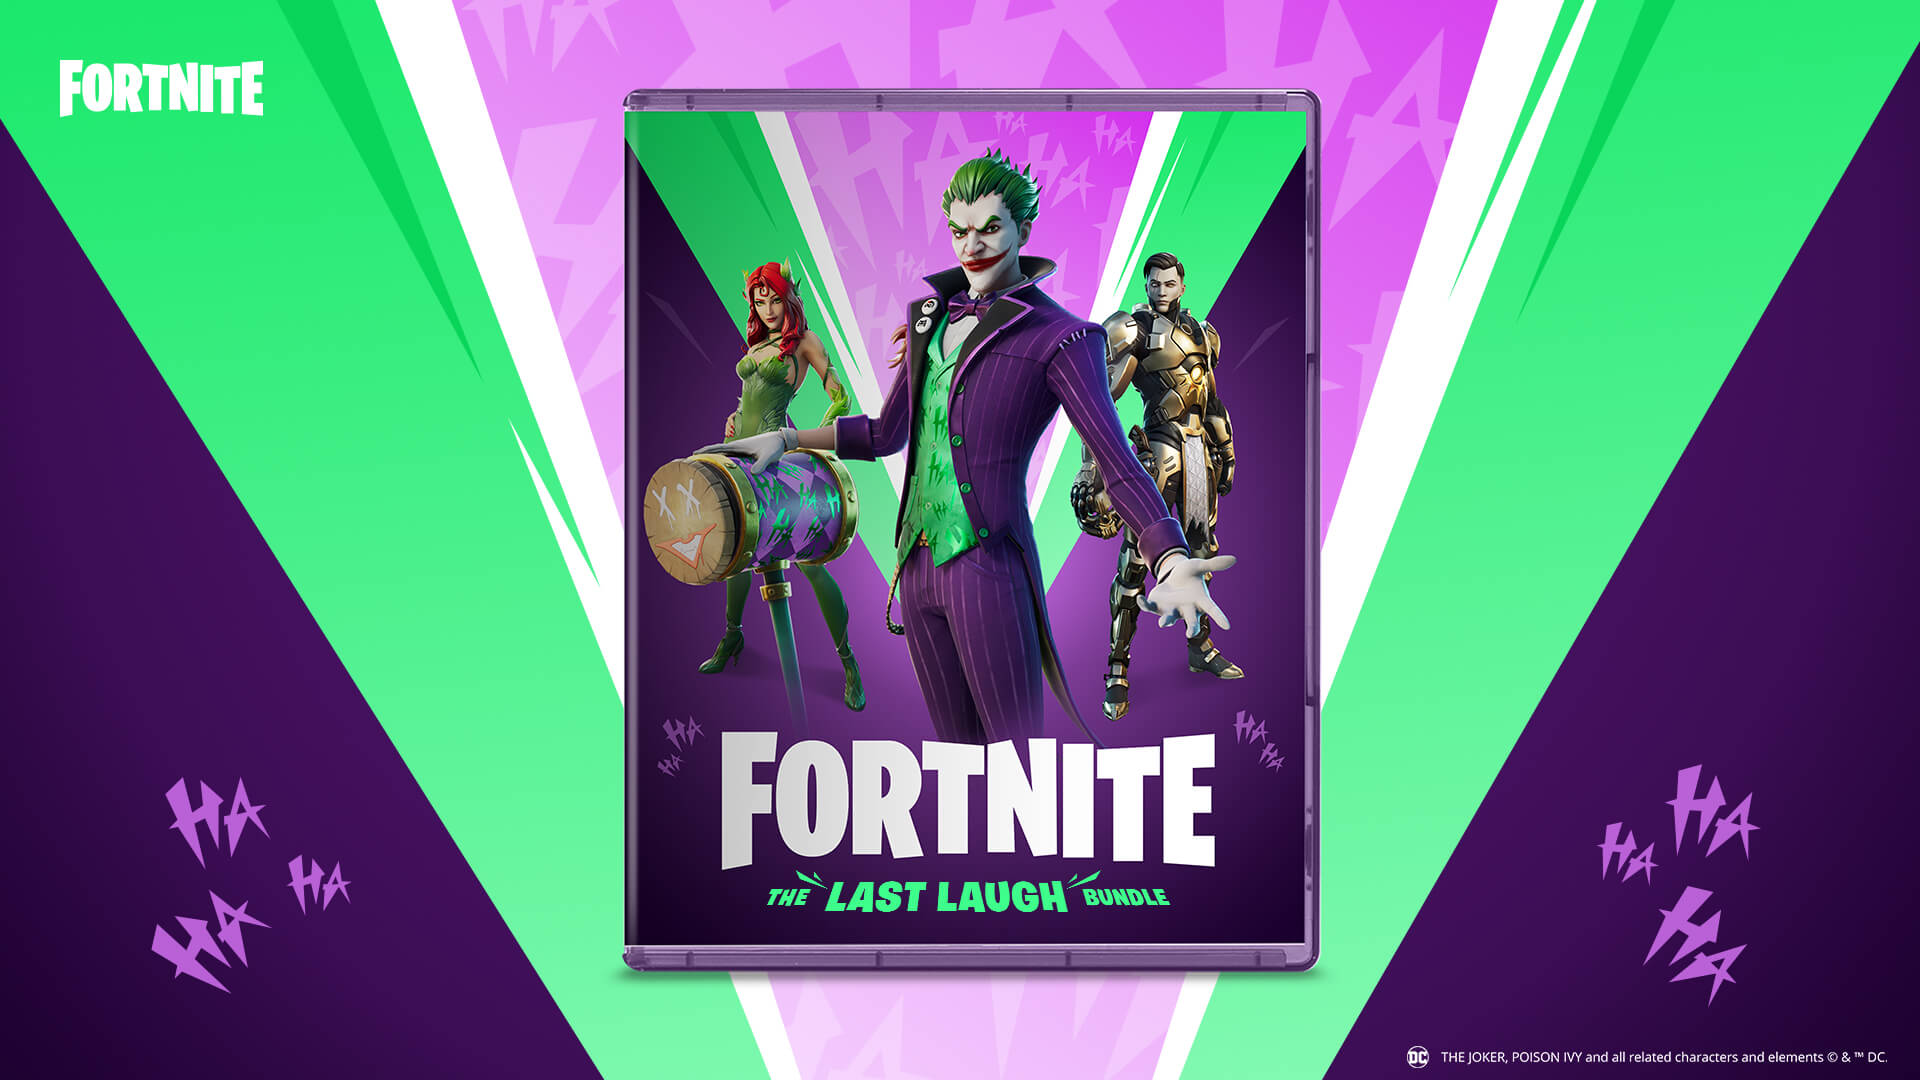 Fortnite The Last Laugh Bundle Joker